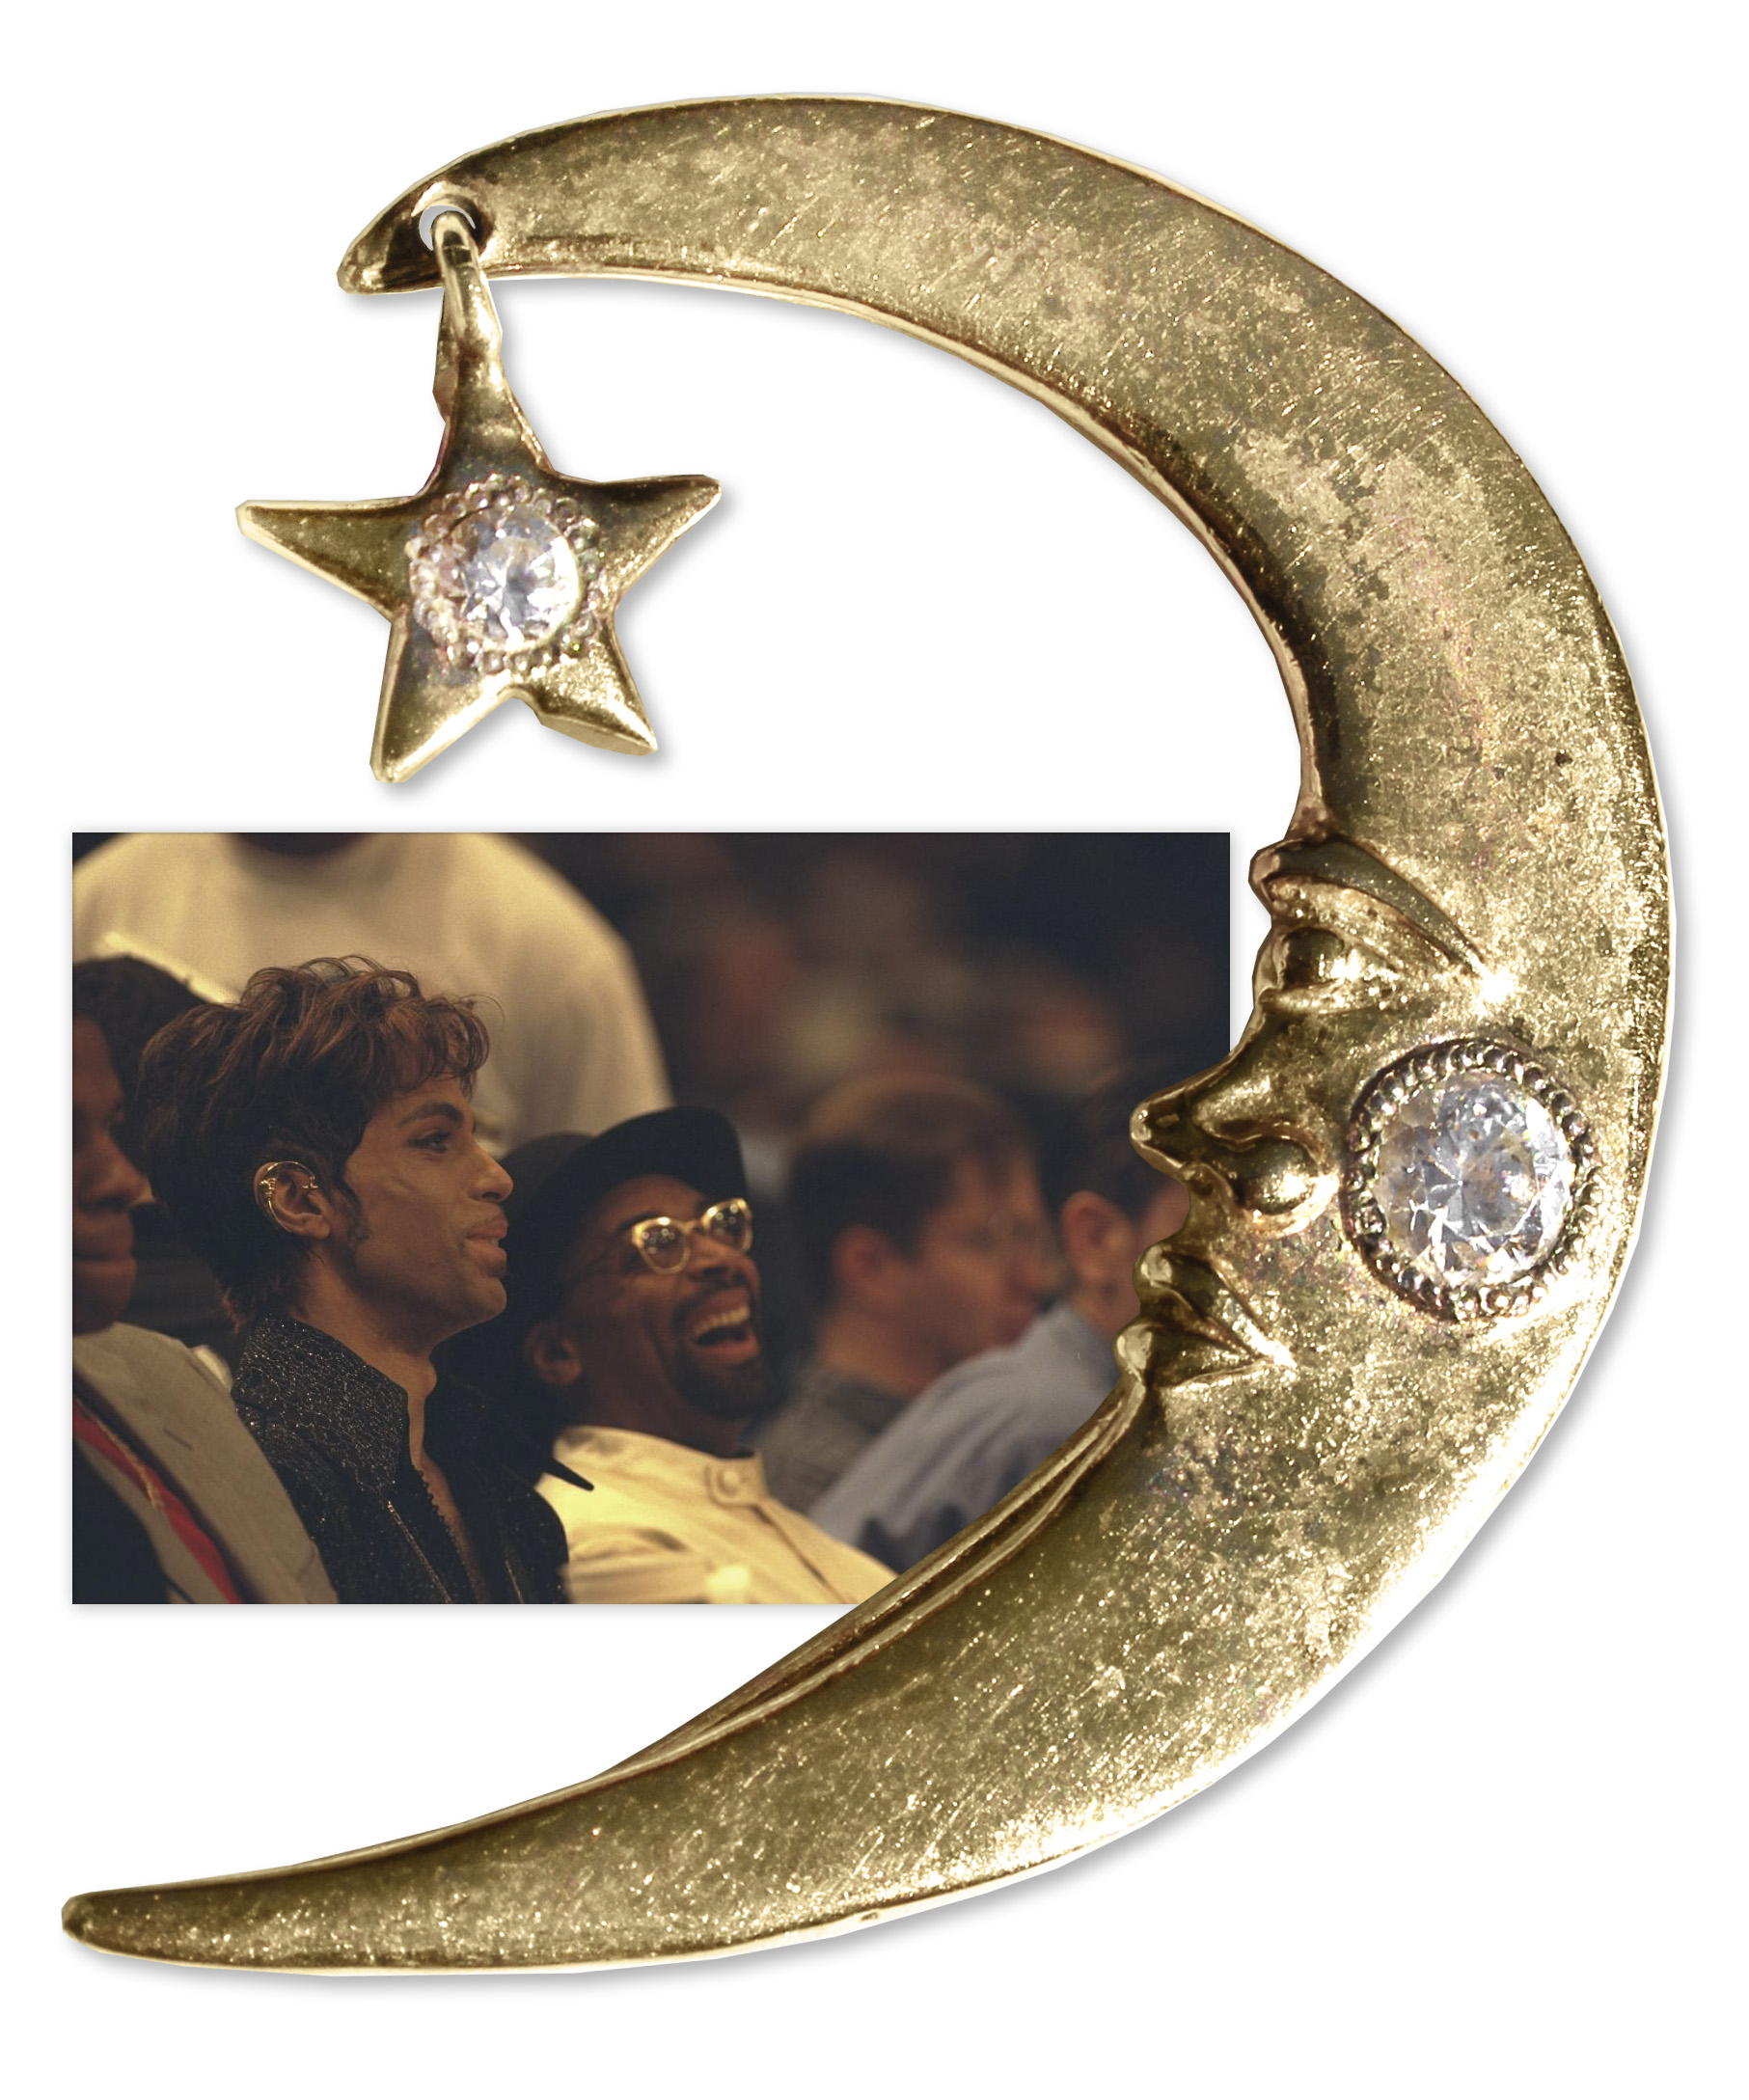 Prince Worn Jewelry Moon & Star Ear Wrap Worn by Prince -- Worn at 1998 NBA All-Star Game With Spike Lee